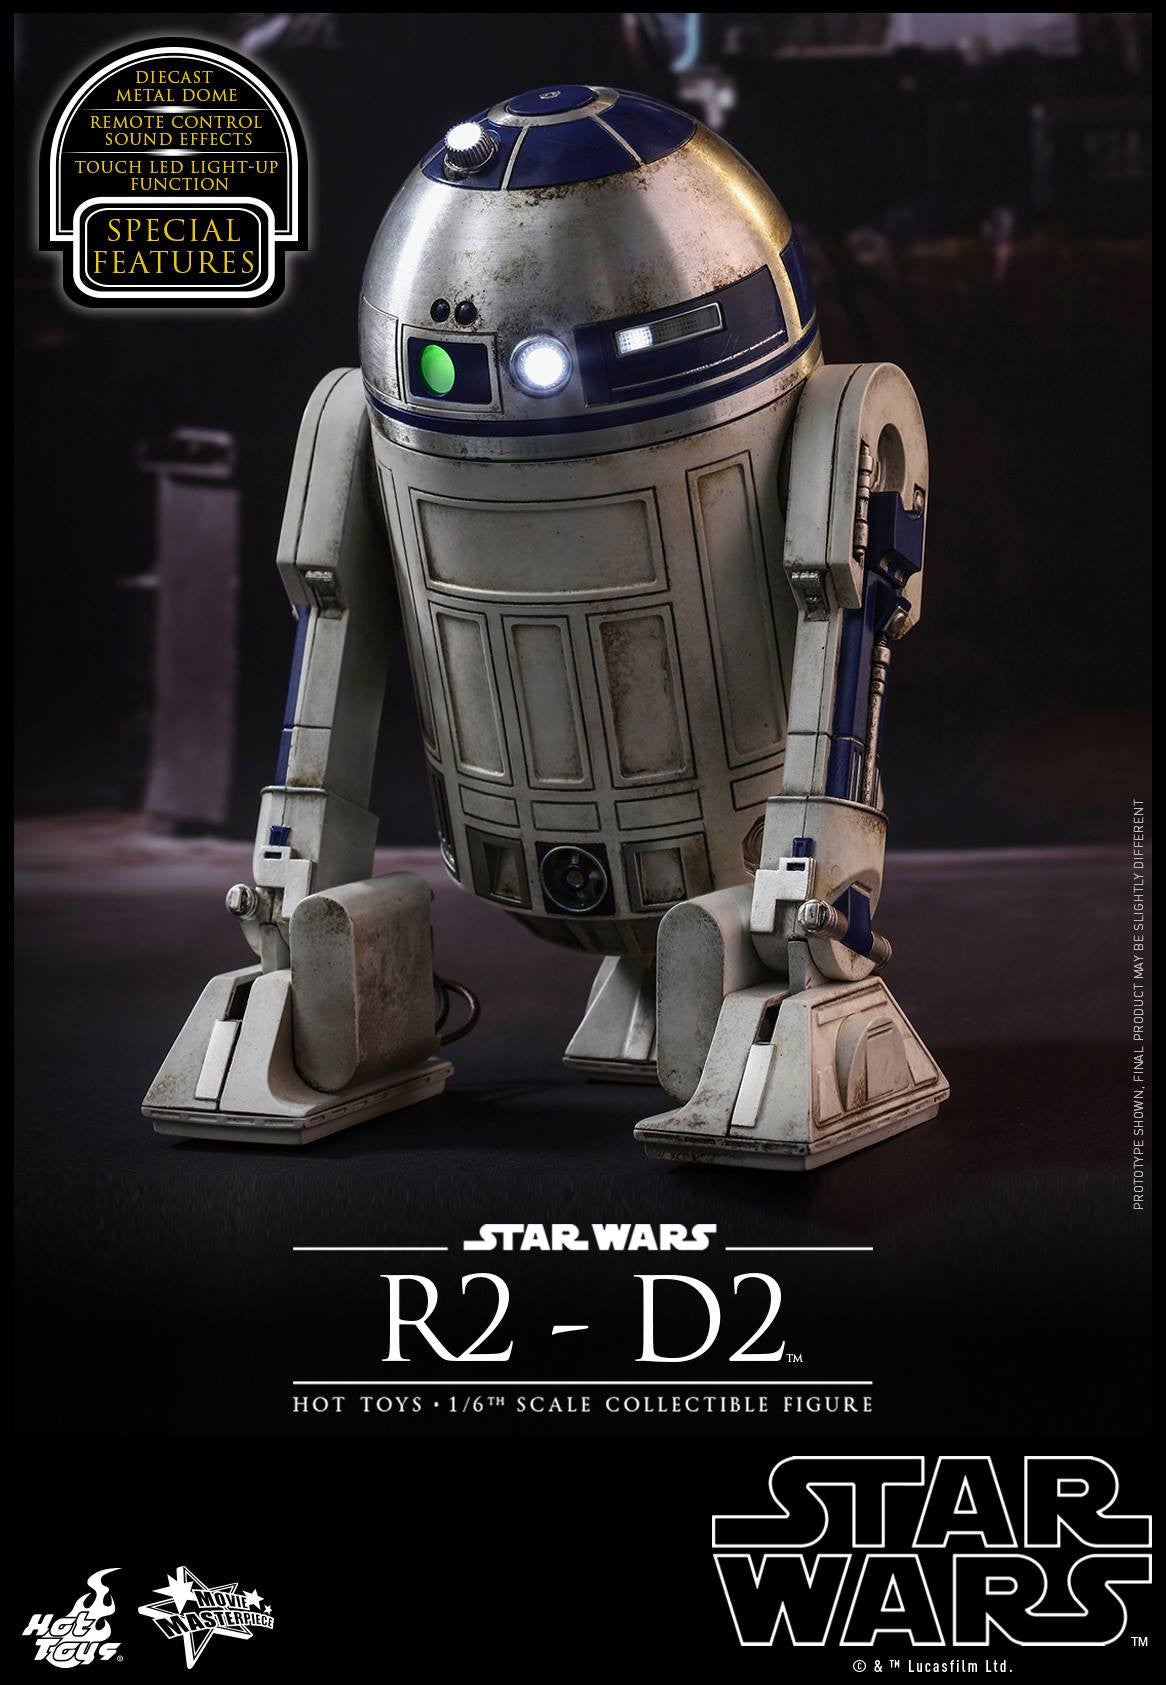 Hot Toys - MMS408 - Star Wars: The Force Awakens - R2-D2 - Marvelous Toys - 7